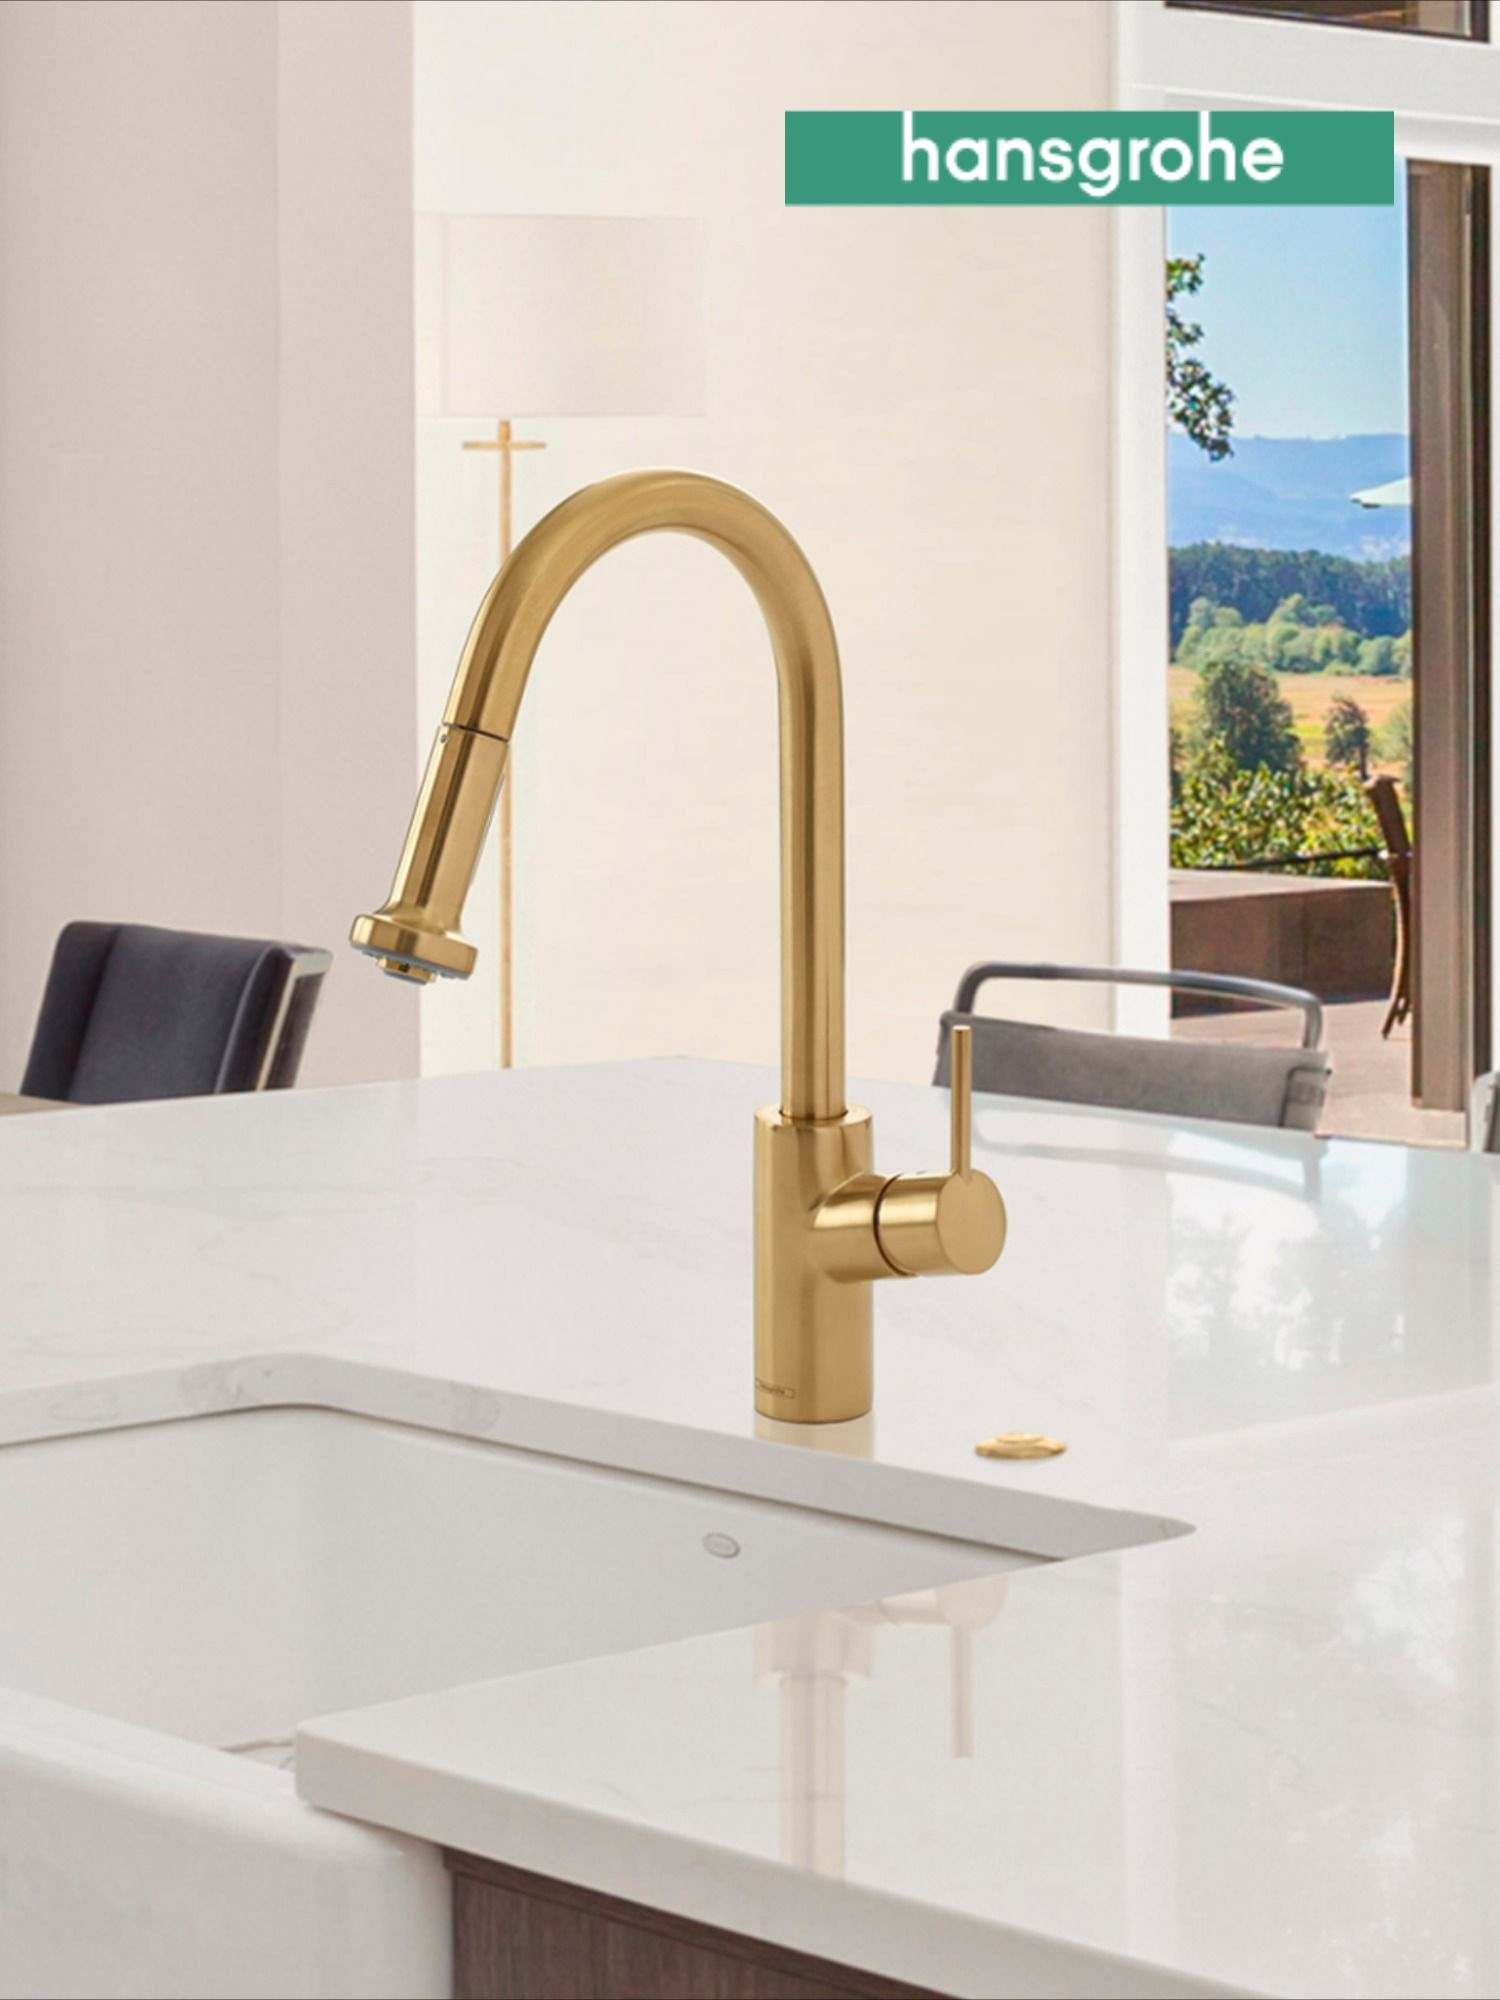 Talis S In Brushed Gold Kitchen Faucet By Hansgrohe In 2021 Kitchen Faucet Gold Kitchen Faucet Faucet